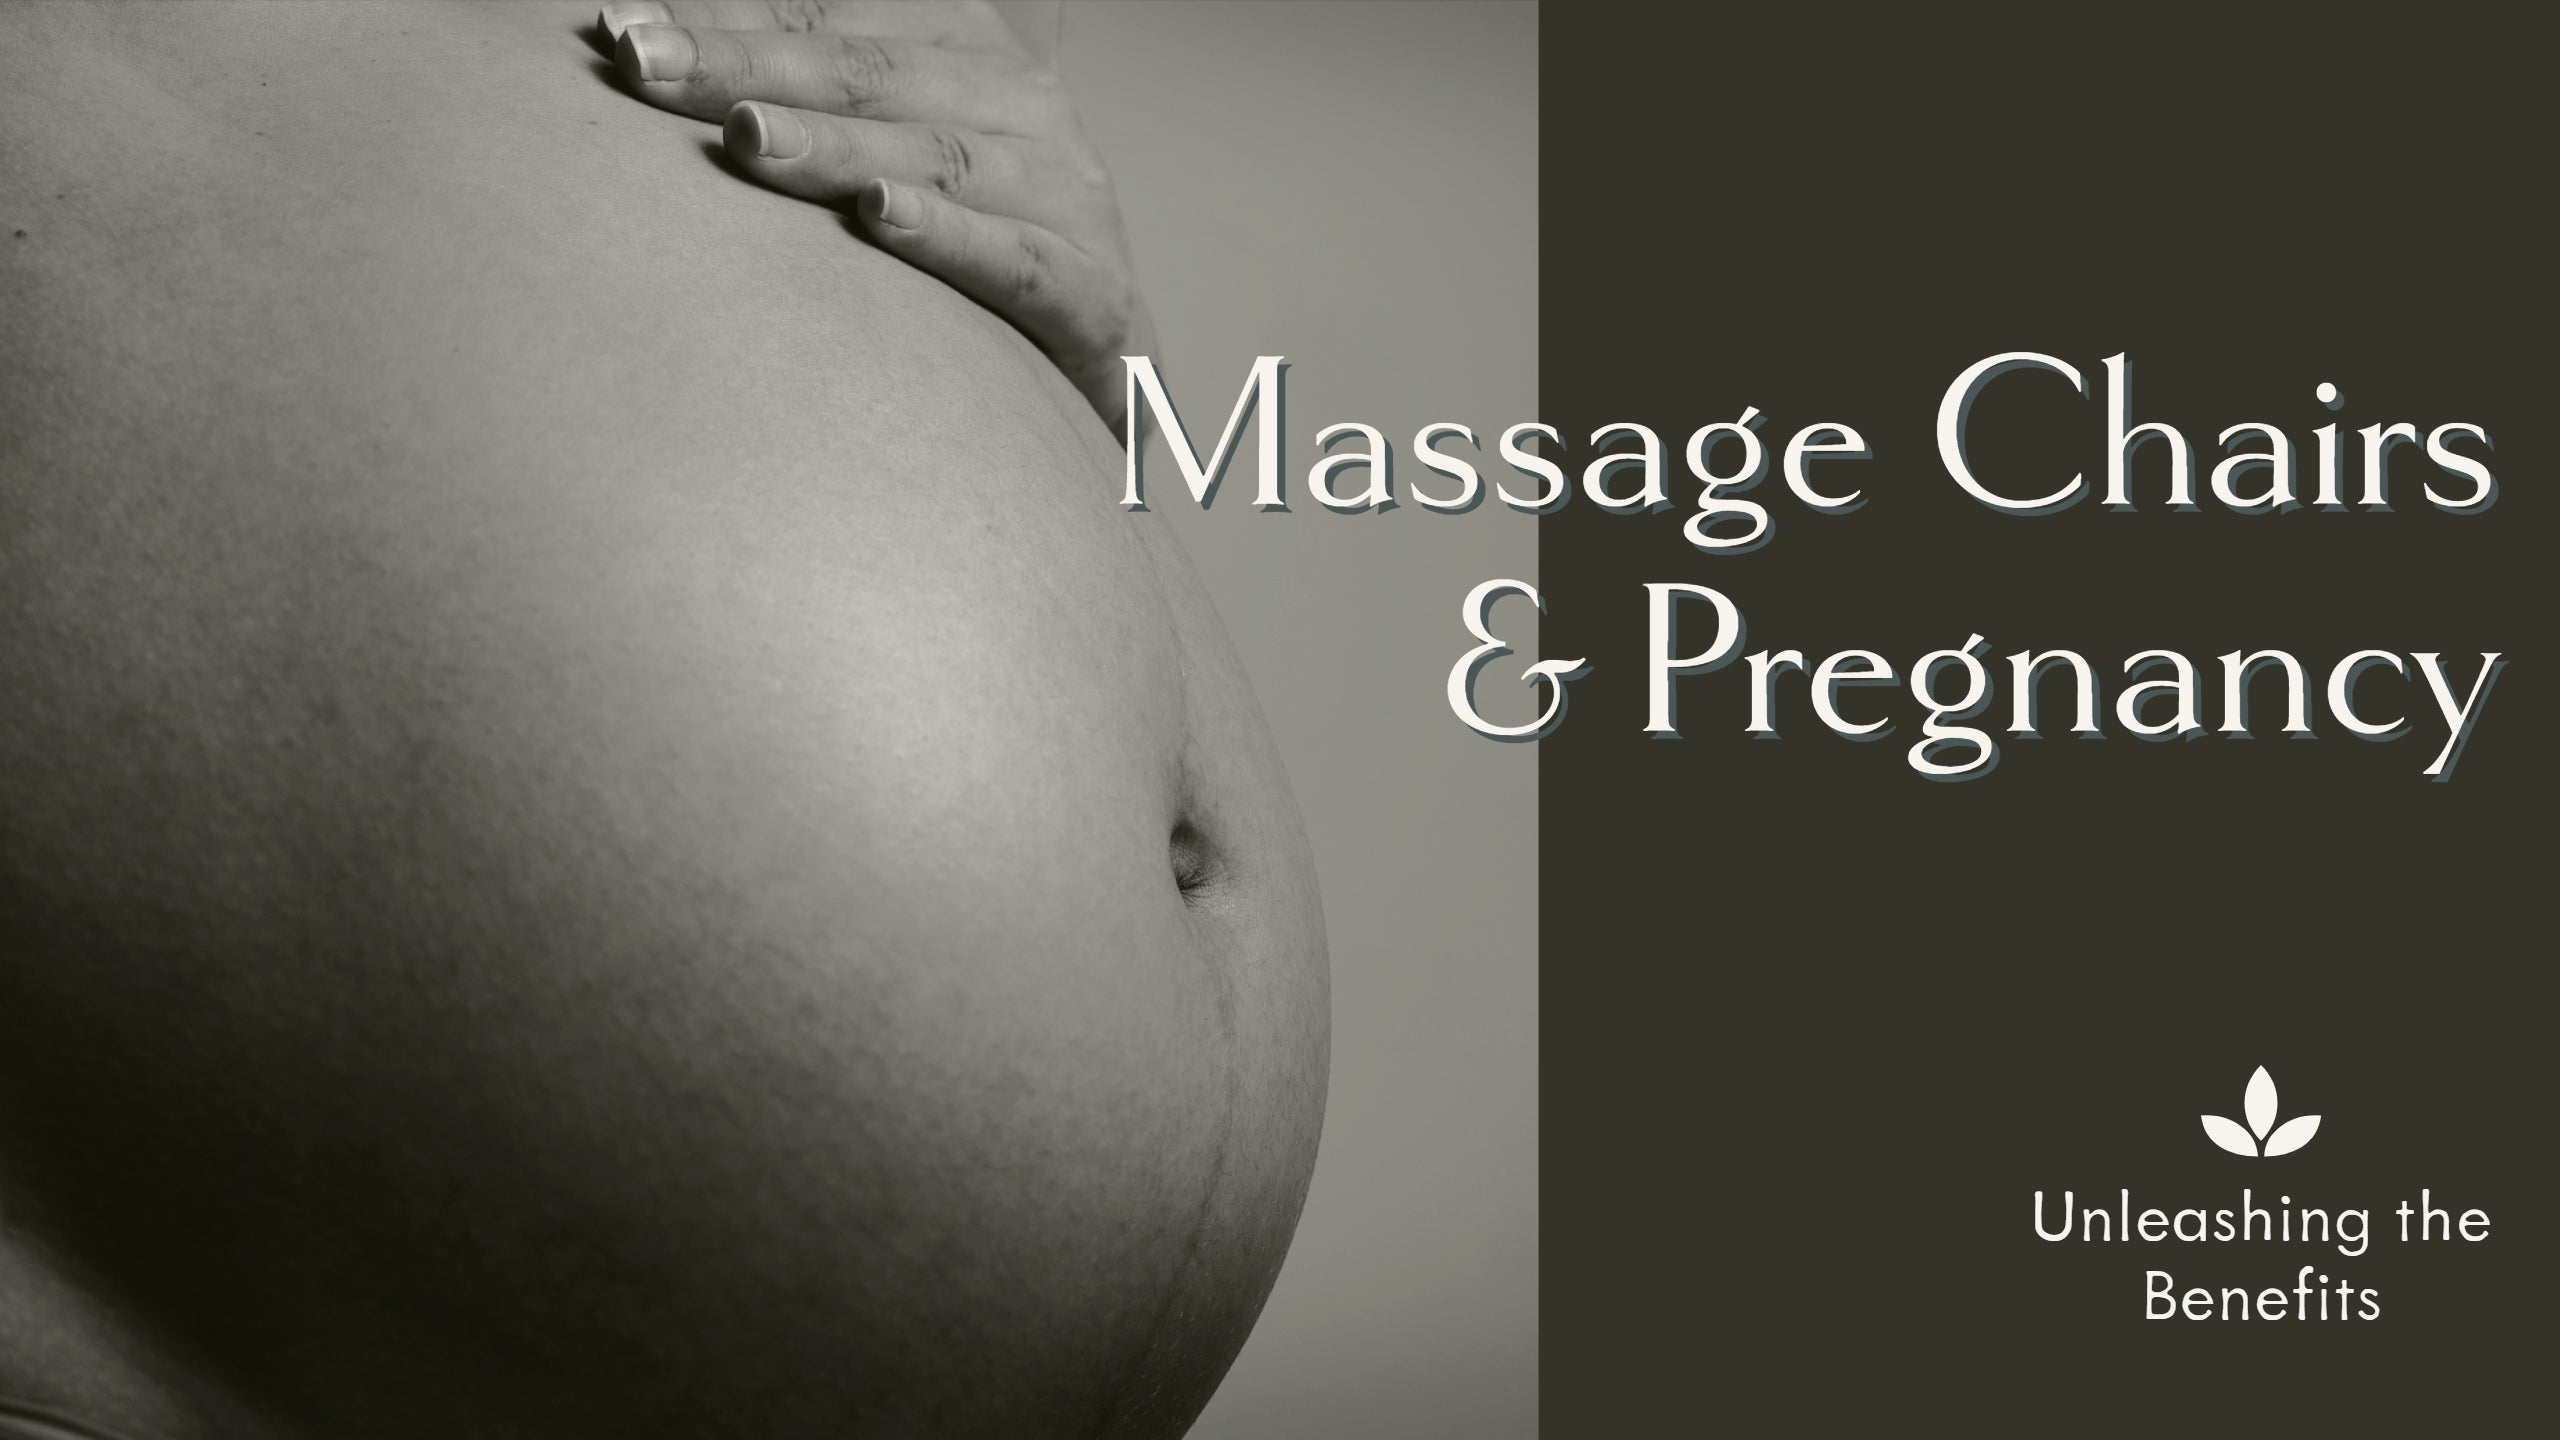 learning center massage chairs and pregnancy